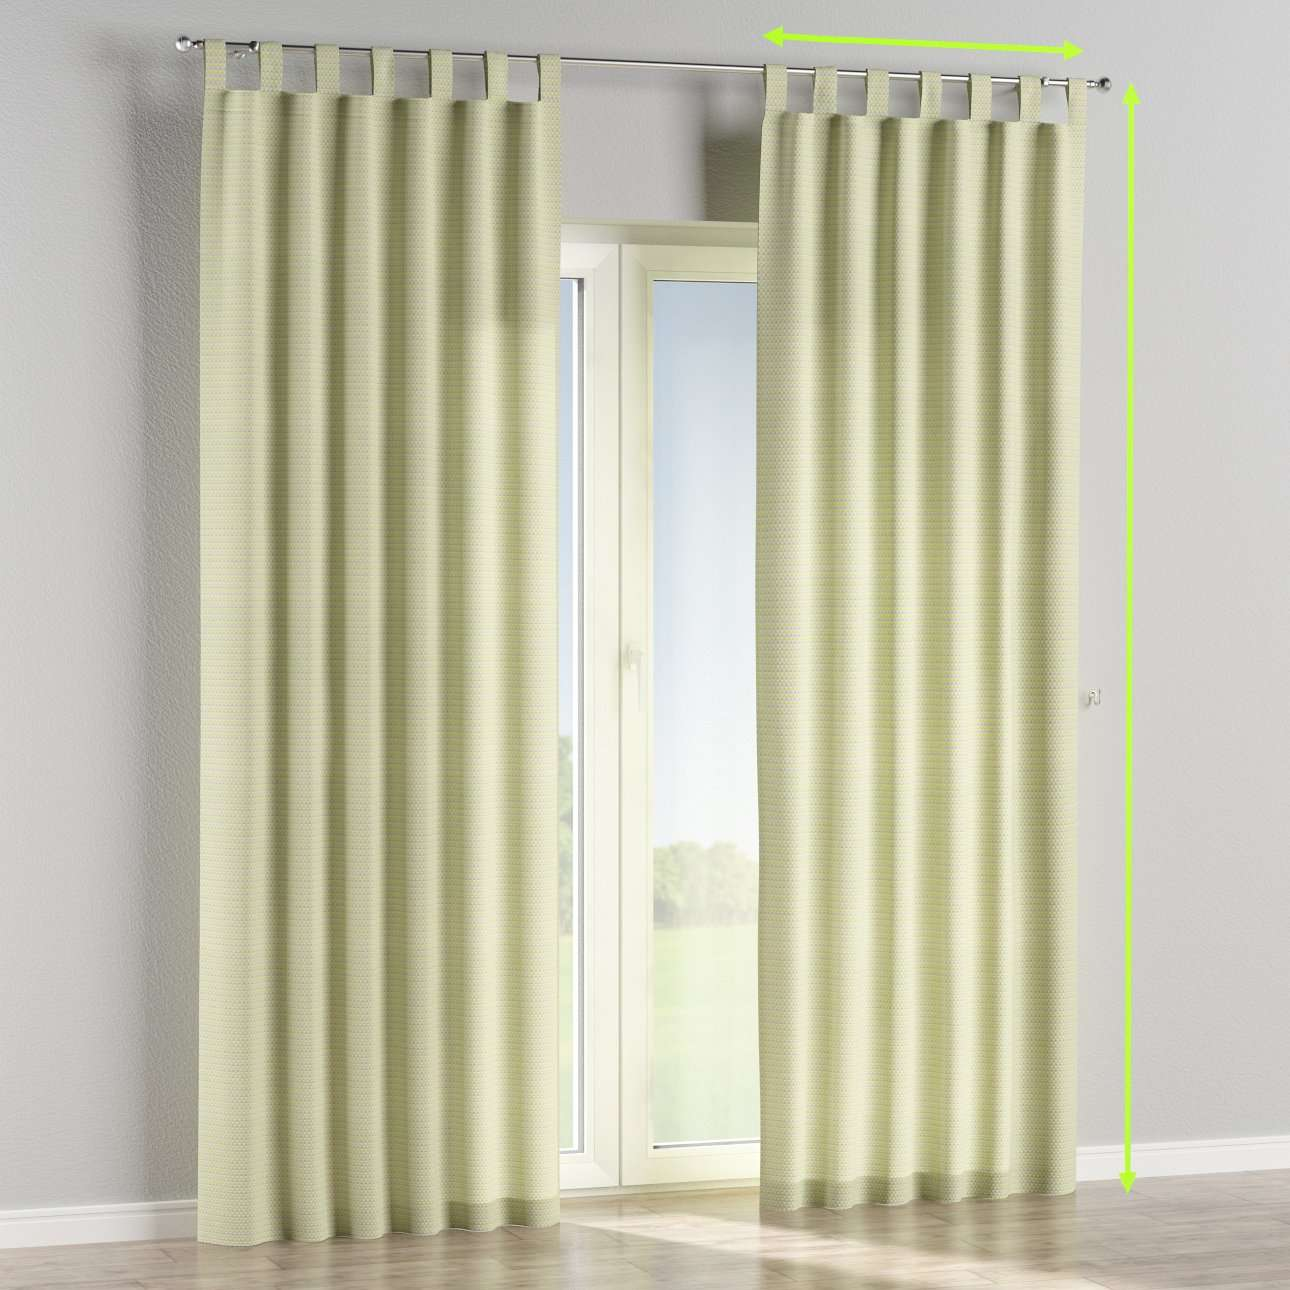 Tab top lined curtains in collection Rustica, fabric: 140-34